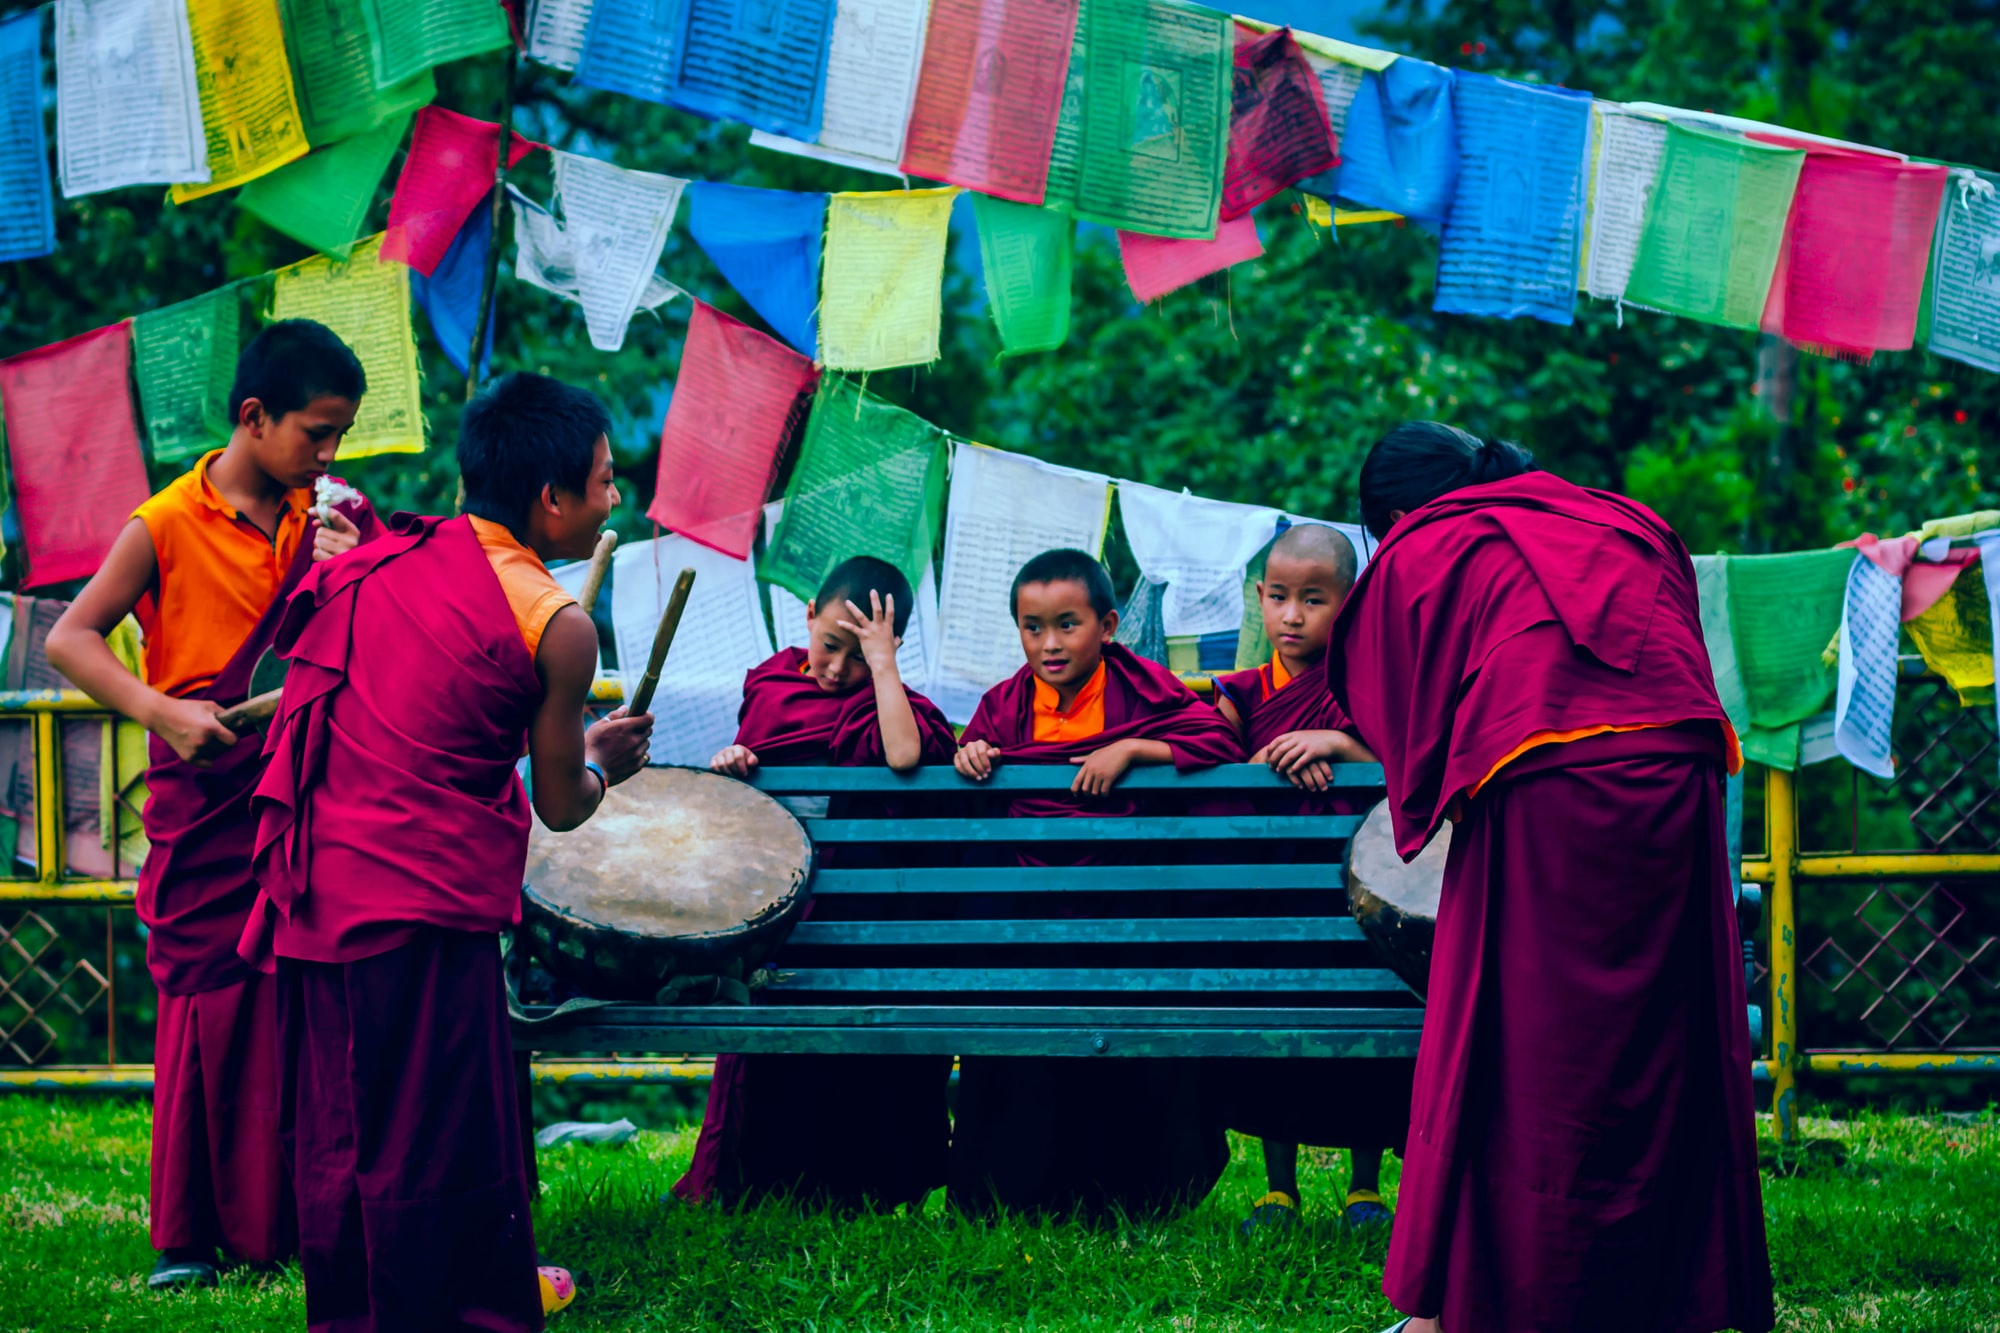 practicing with their drum